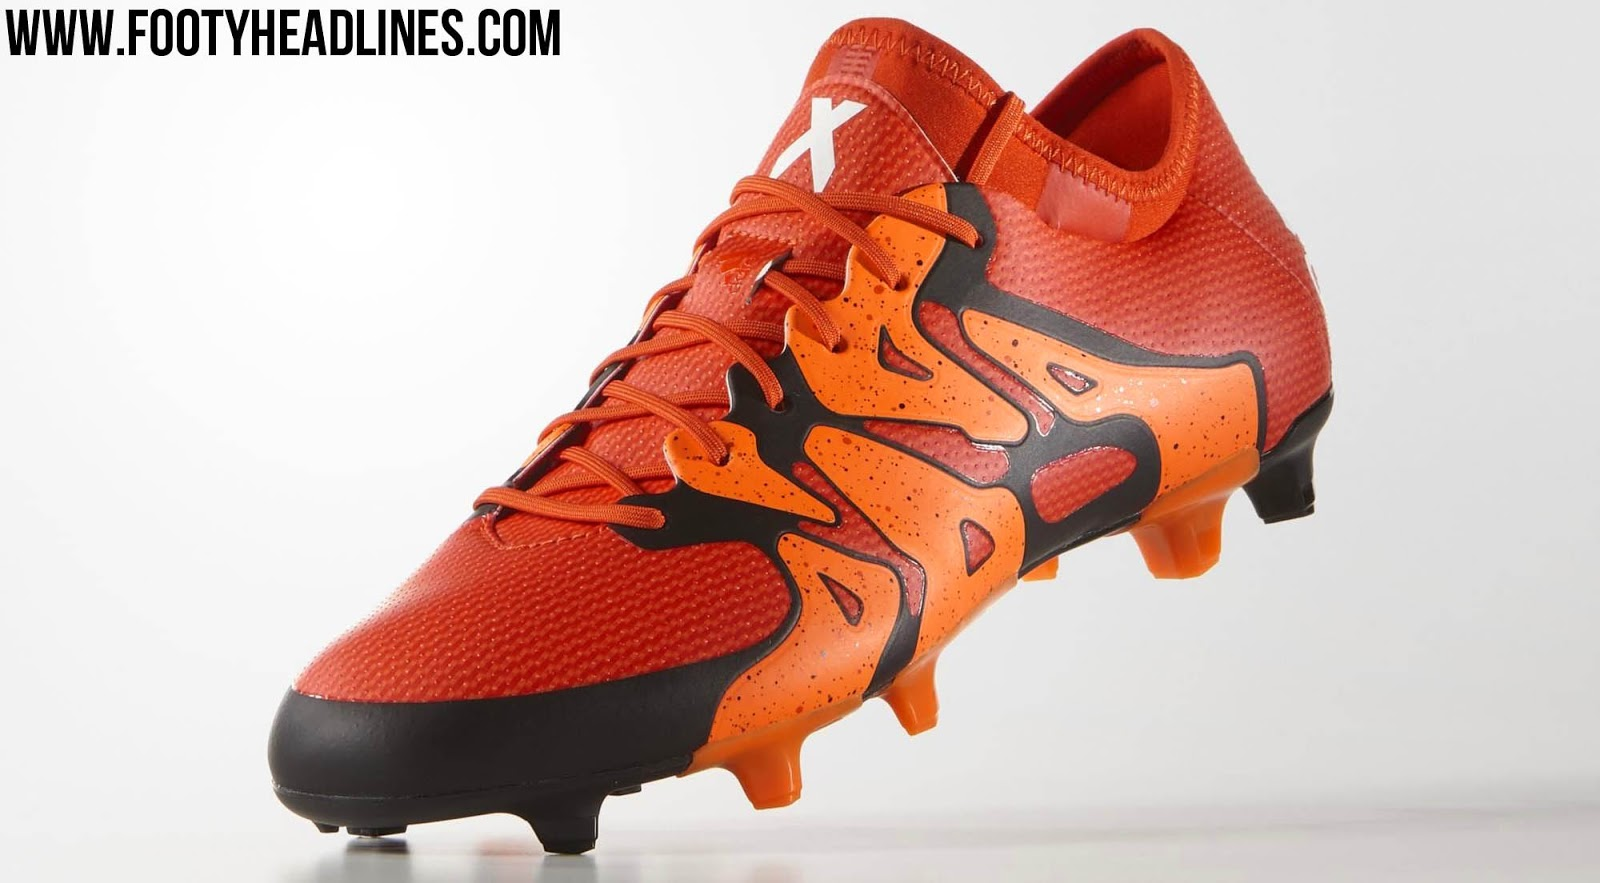 Luis Suarez to wear new tattoo adidas boots. And Barcelona striker ...